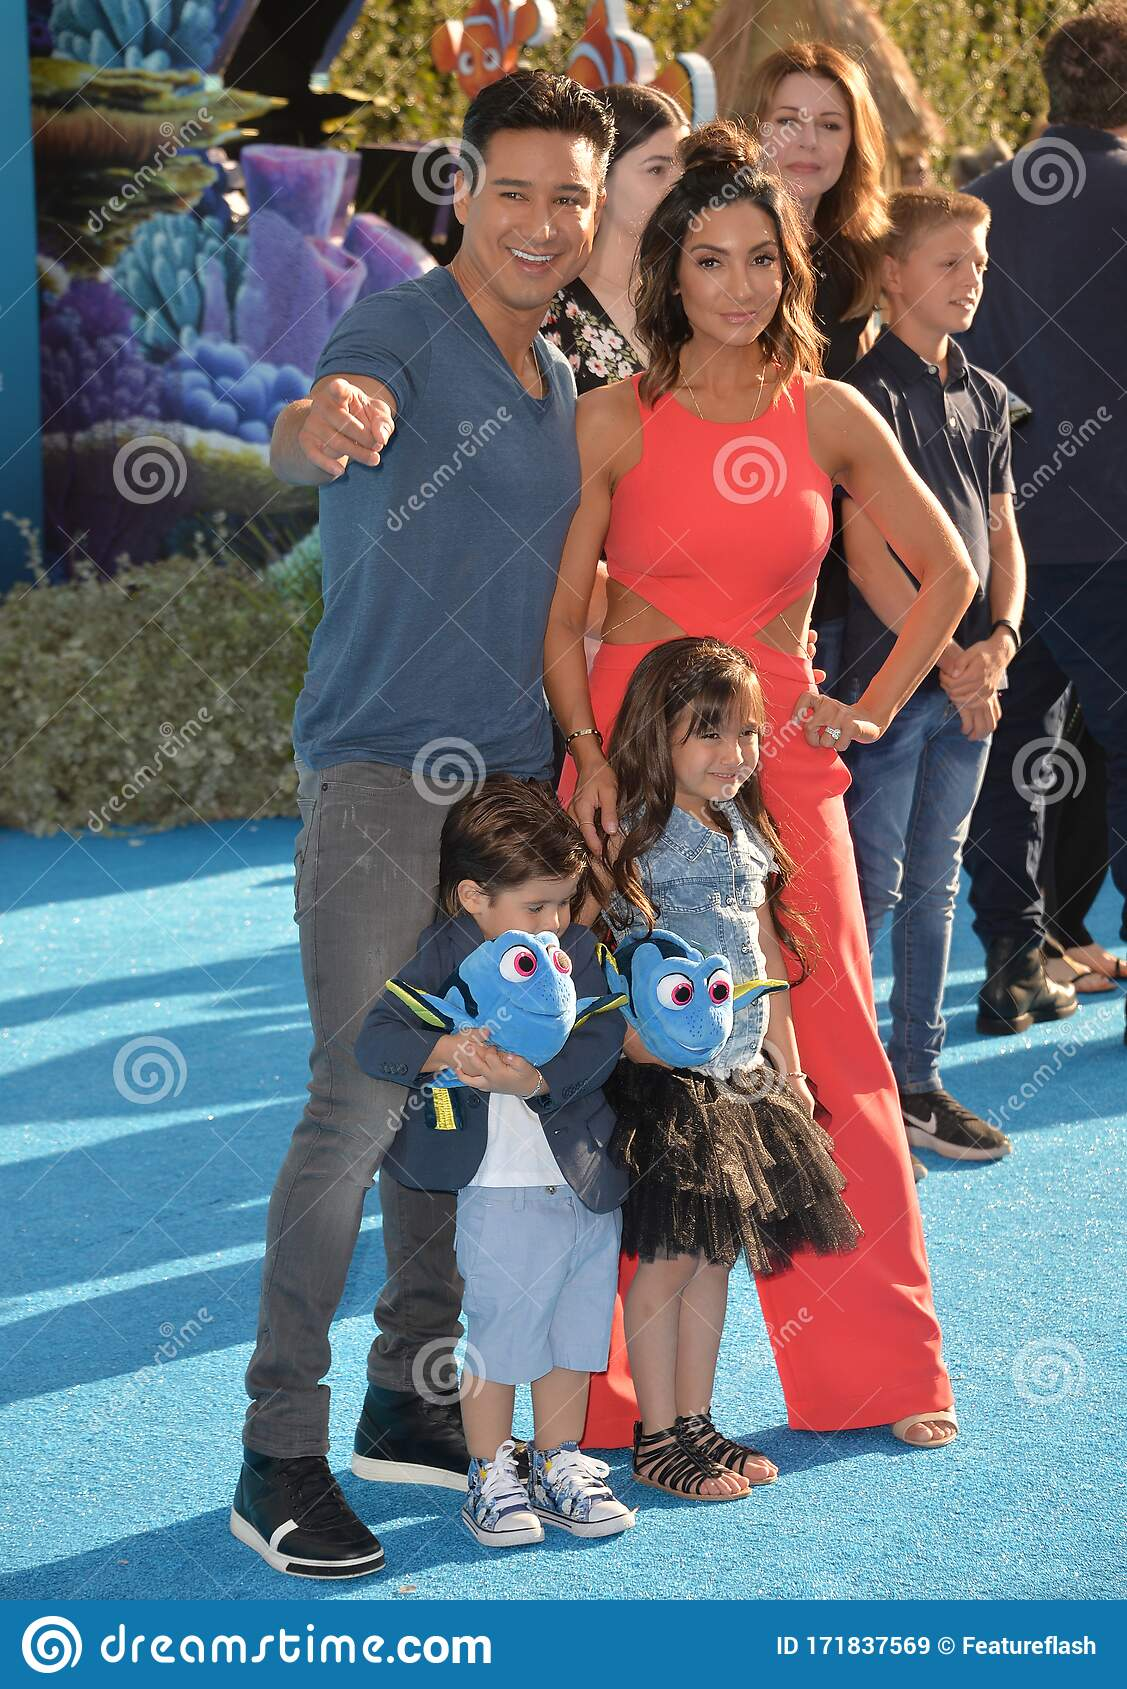 Mario Lopez Editorial Stock Image Image Of Finding 171837569